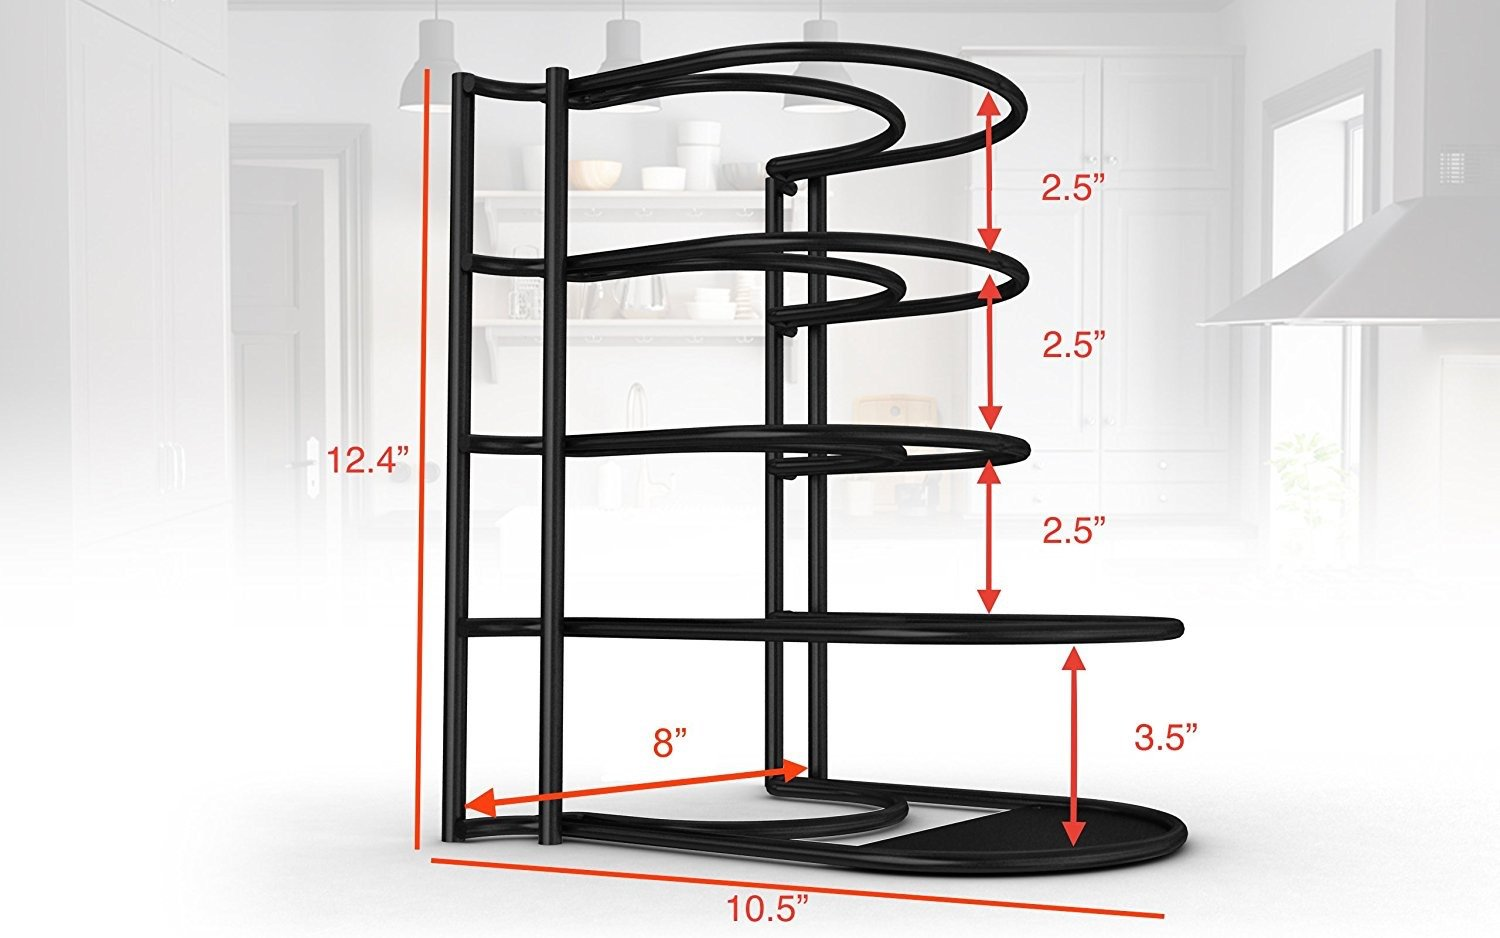 Extreme Matters Heavy Duty Pan Organizer - Bottom Tier 1 Inch Taller for Larger Pans - No Assembly Required - Black by Extreme Matters (Image #3)